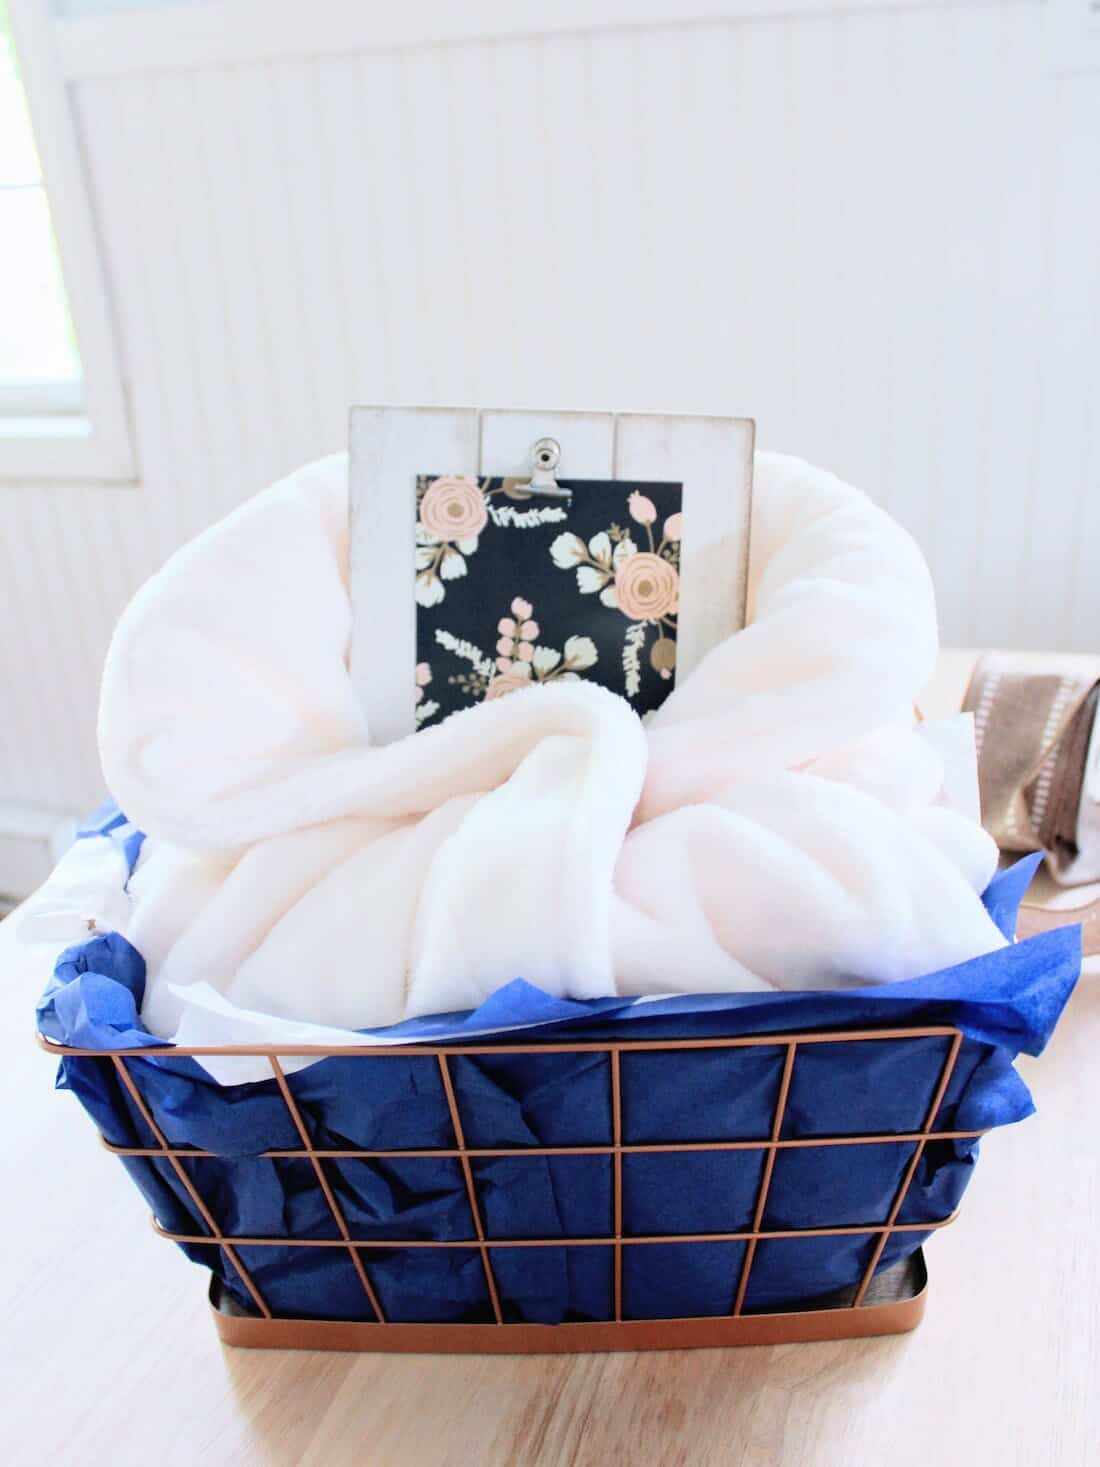 New mom gift basket with blue tissue paper.